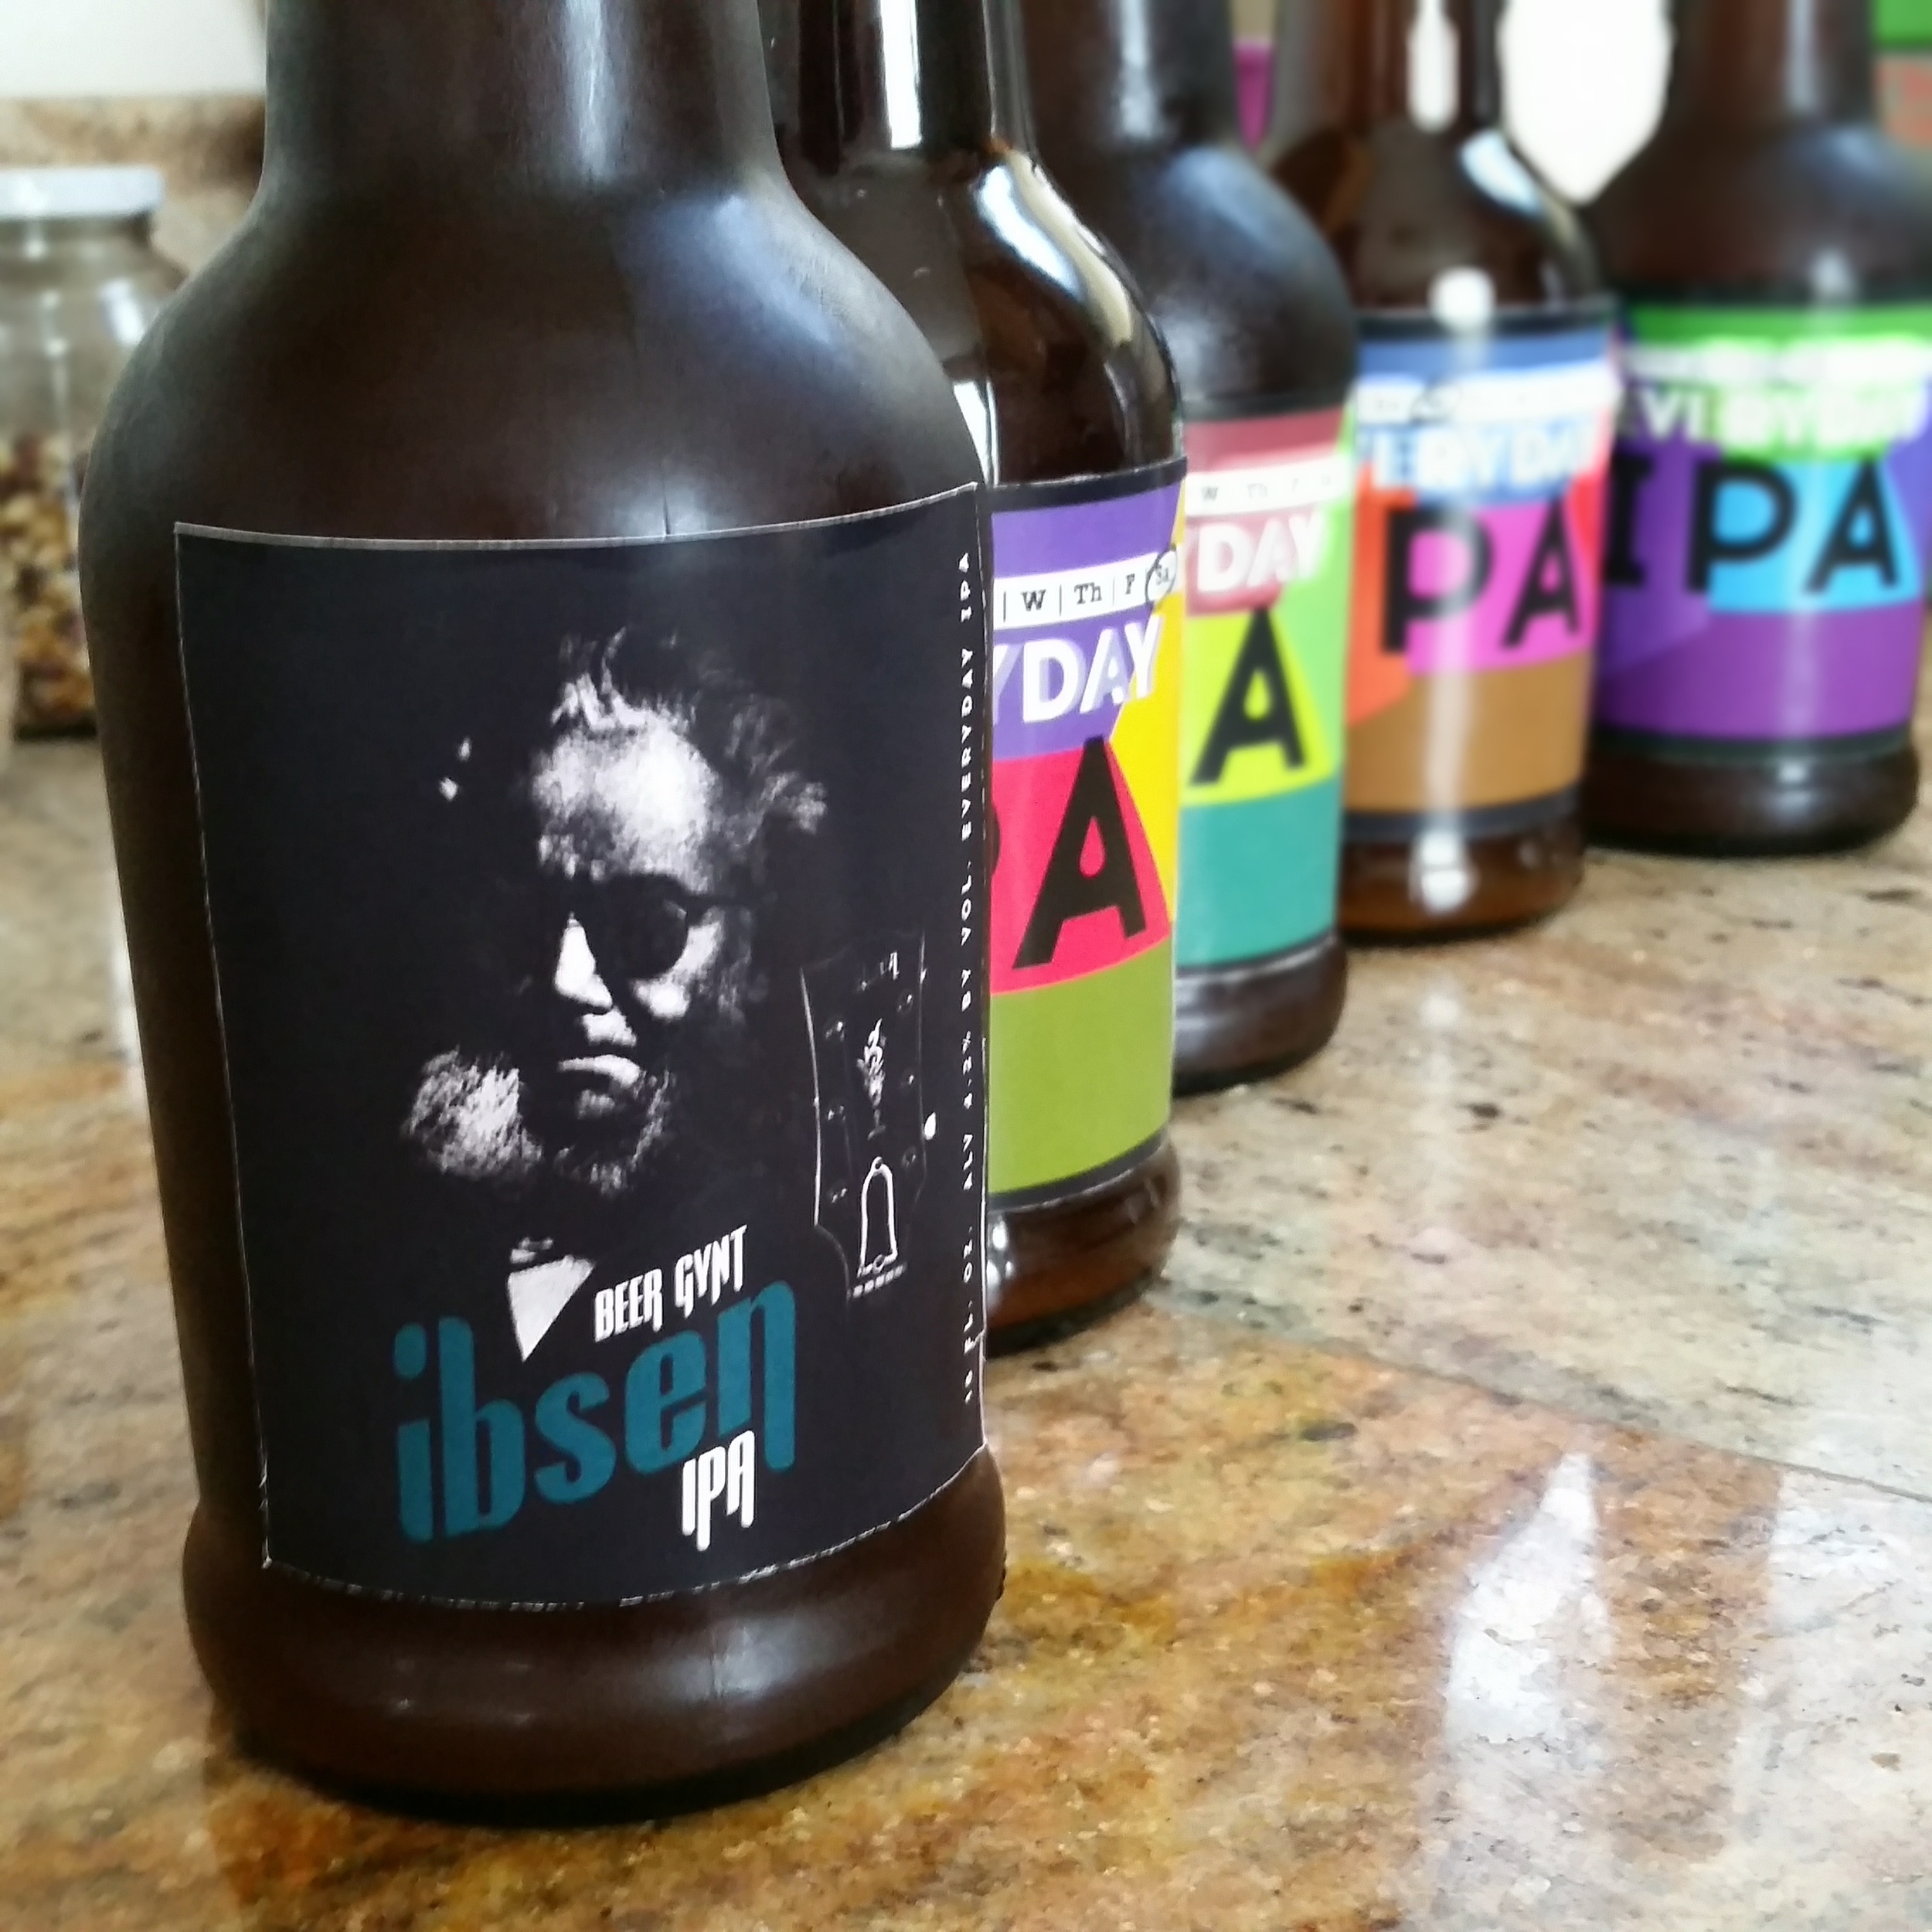 Many of my American friends may not get all the amazing puns going on here. But to all my Norwegians, here is the  Beer Gynt Ibsen IPA . The Ibsen logo is completely inspired by Gibson guitars.